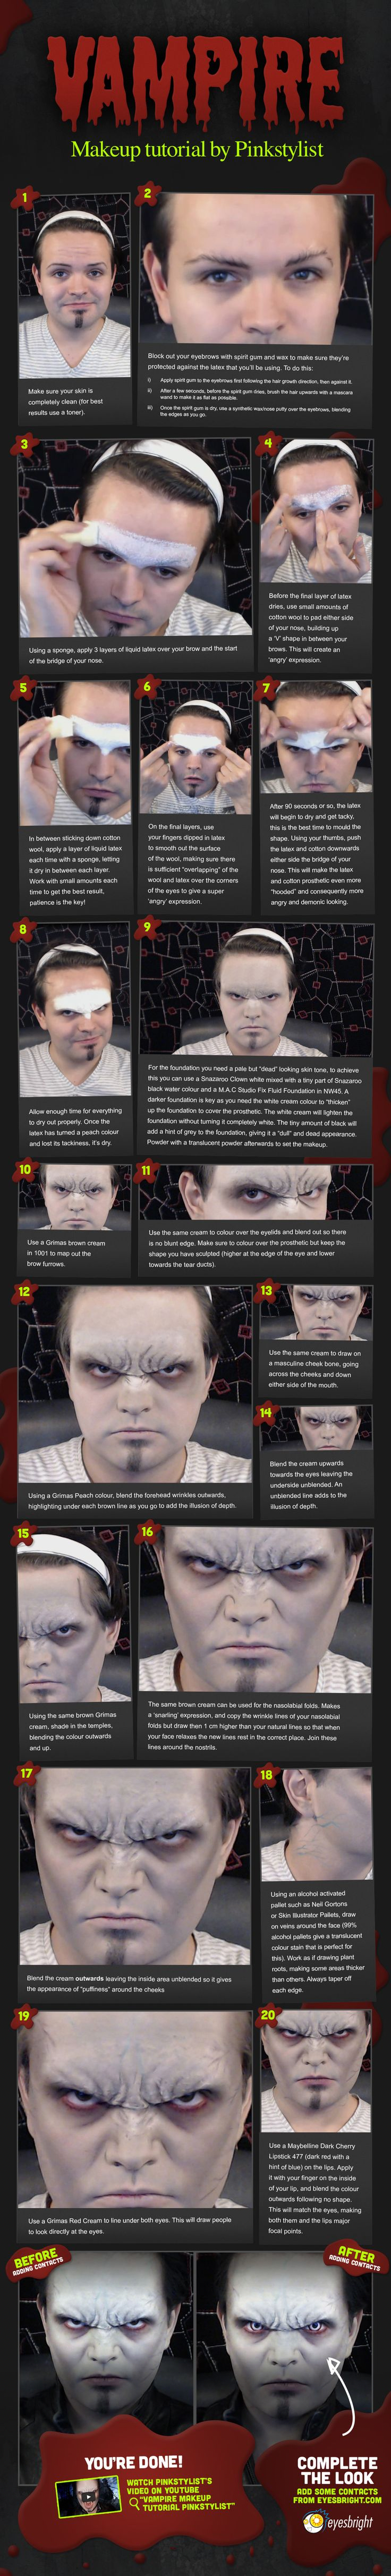 """""""Vampire Makeup Tutorial"""" infographic for Eyesbright #eyesbright #contactlenses #contact #lenses #halloween #vampire #tutorial #makeup #pinkstylist #infographic"""